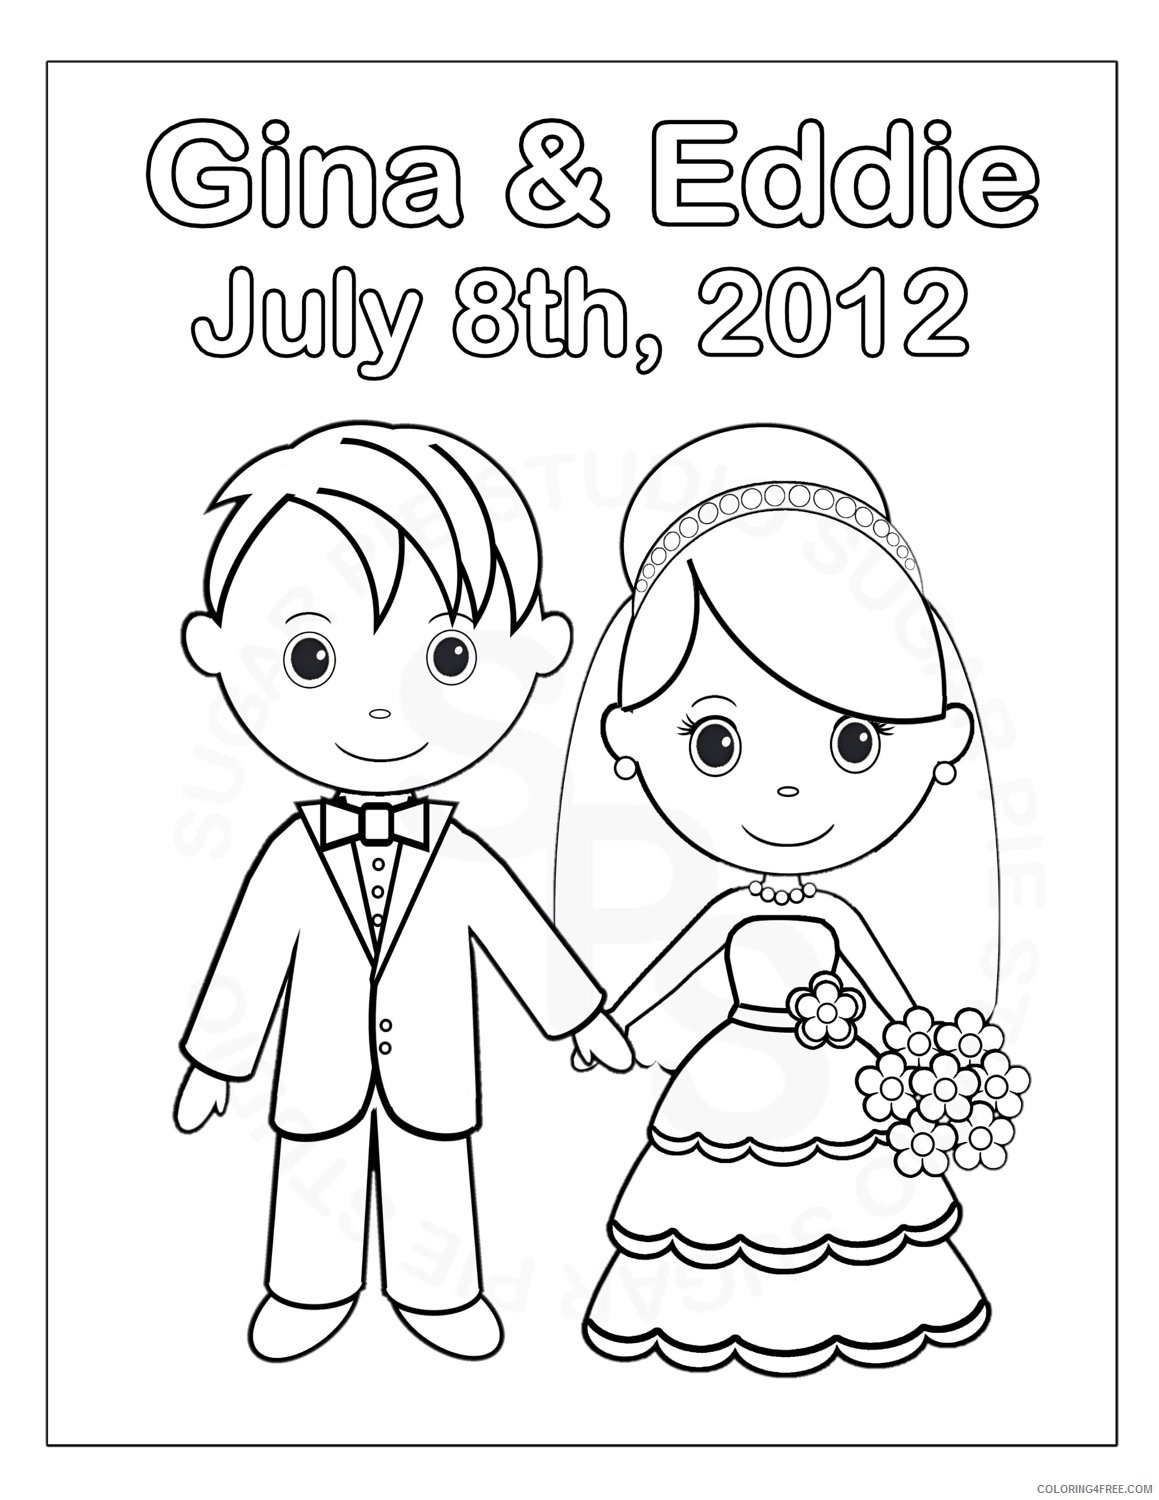 wedding coloring pages printable Coloring4free